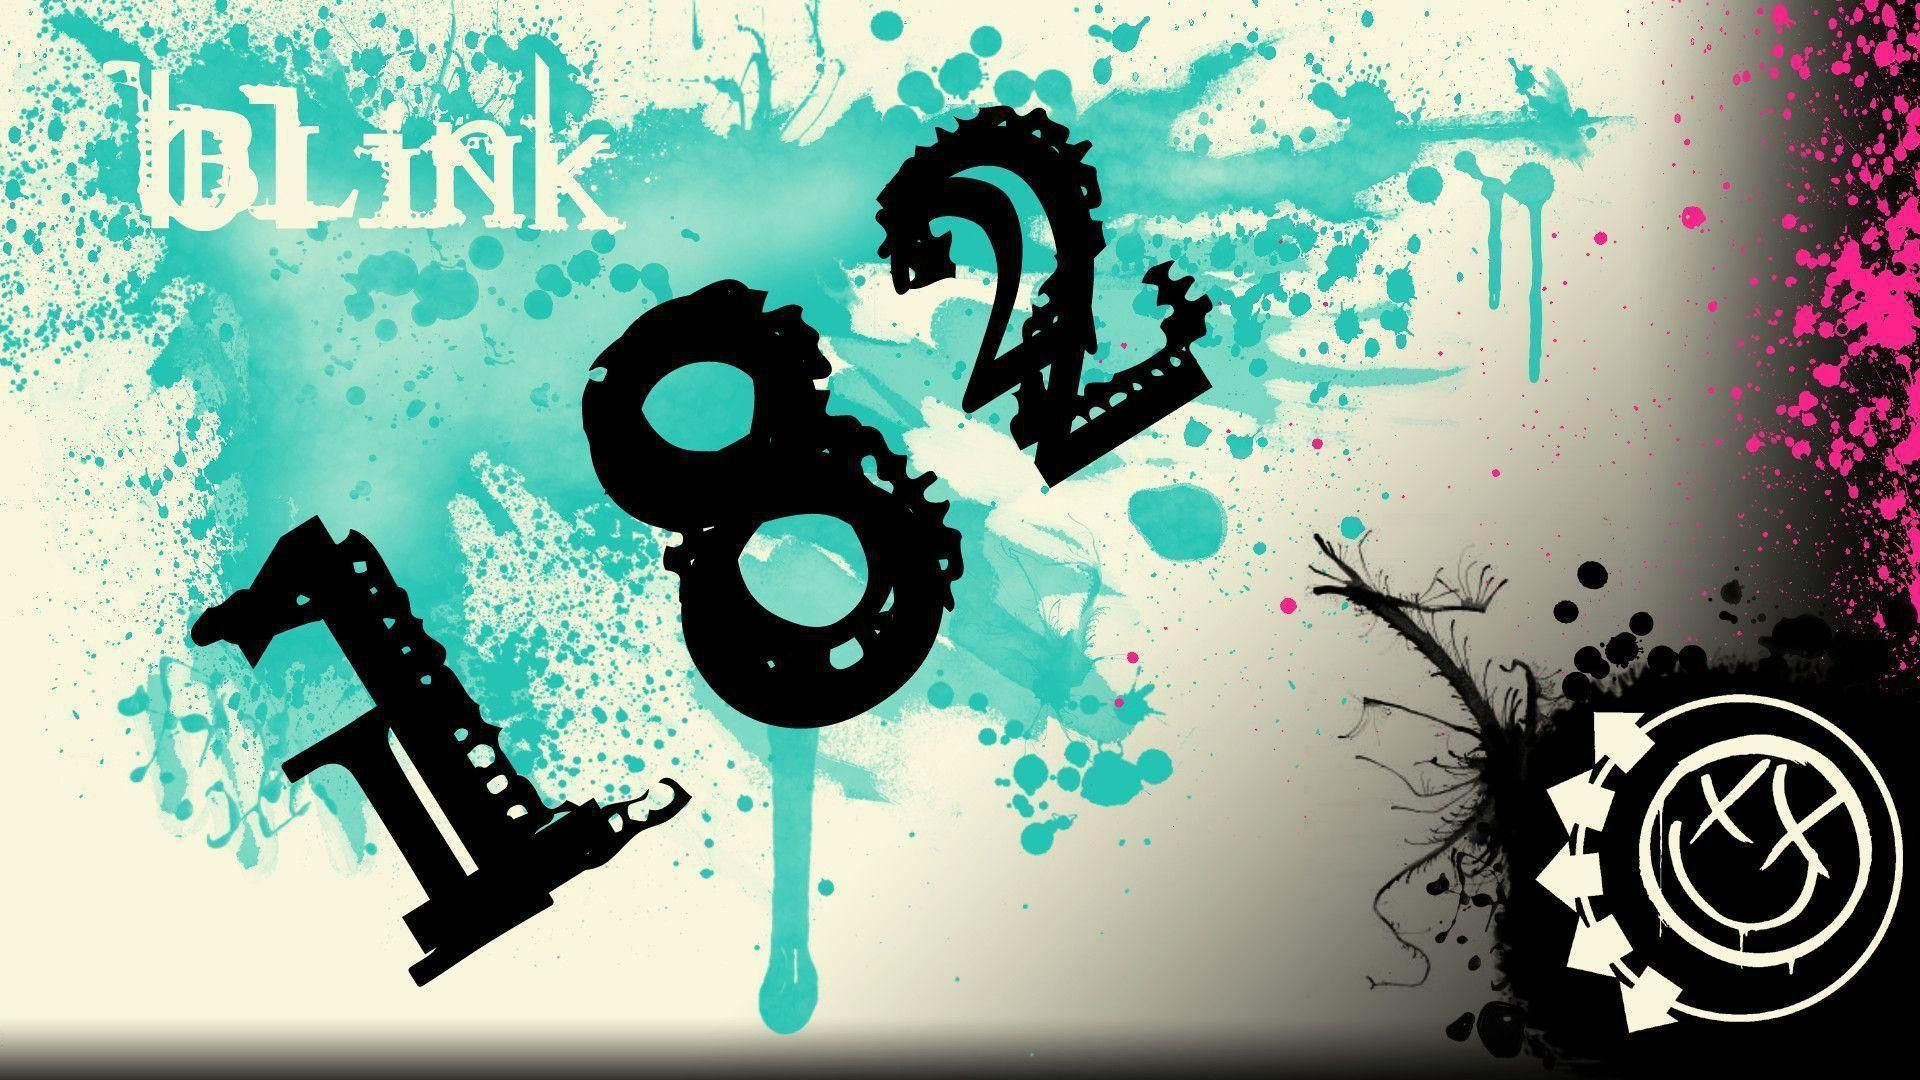 Blink 182 Background